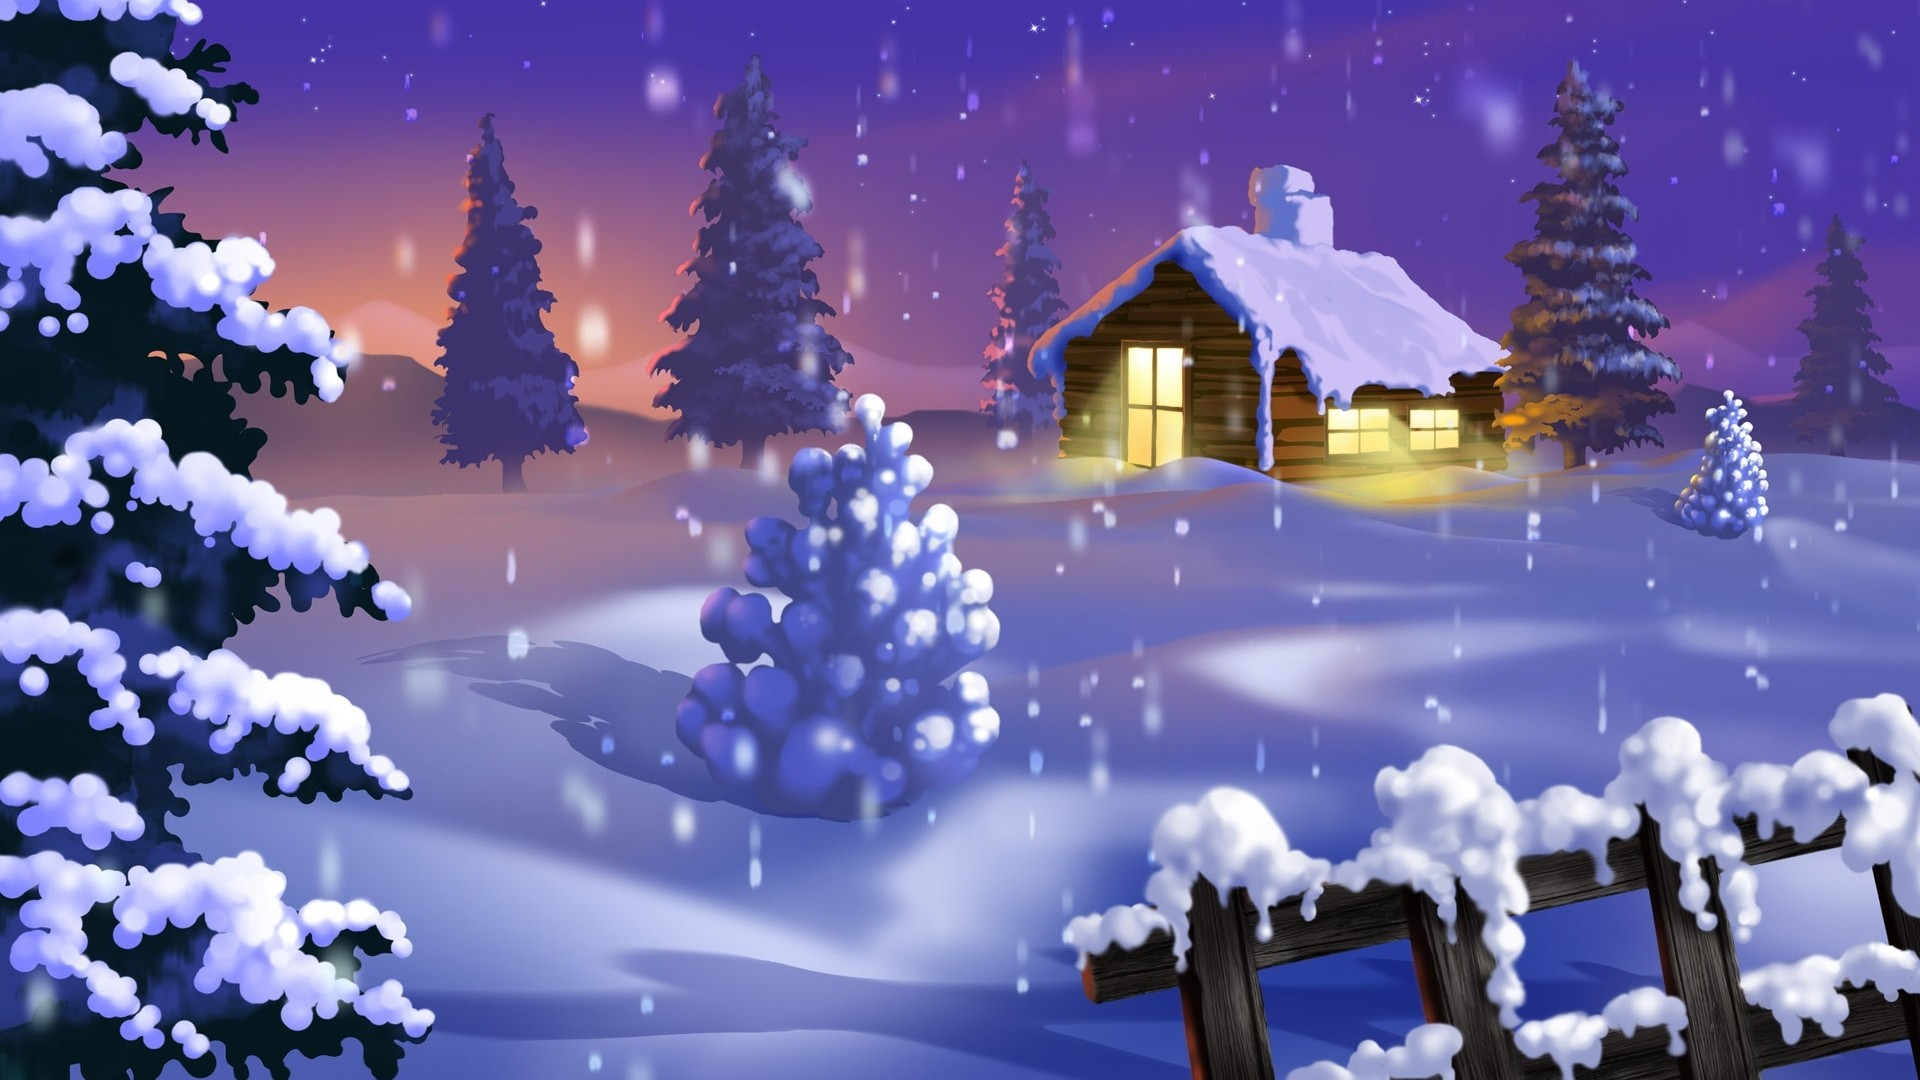 Res: 1920x1080, 24 Animated Christmas Wallpapers